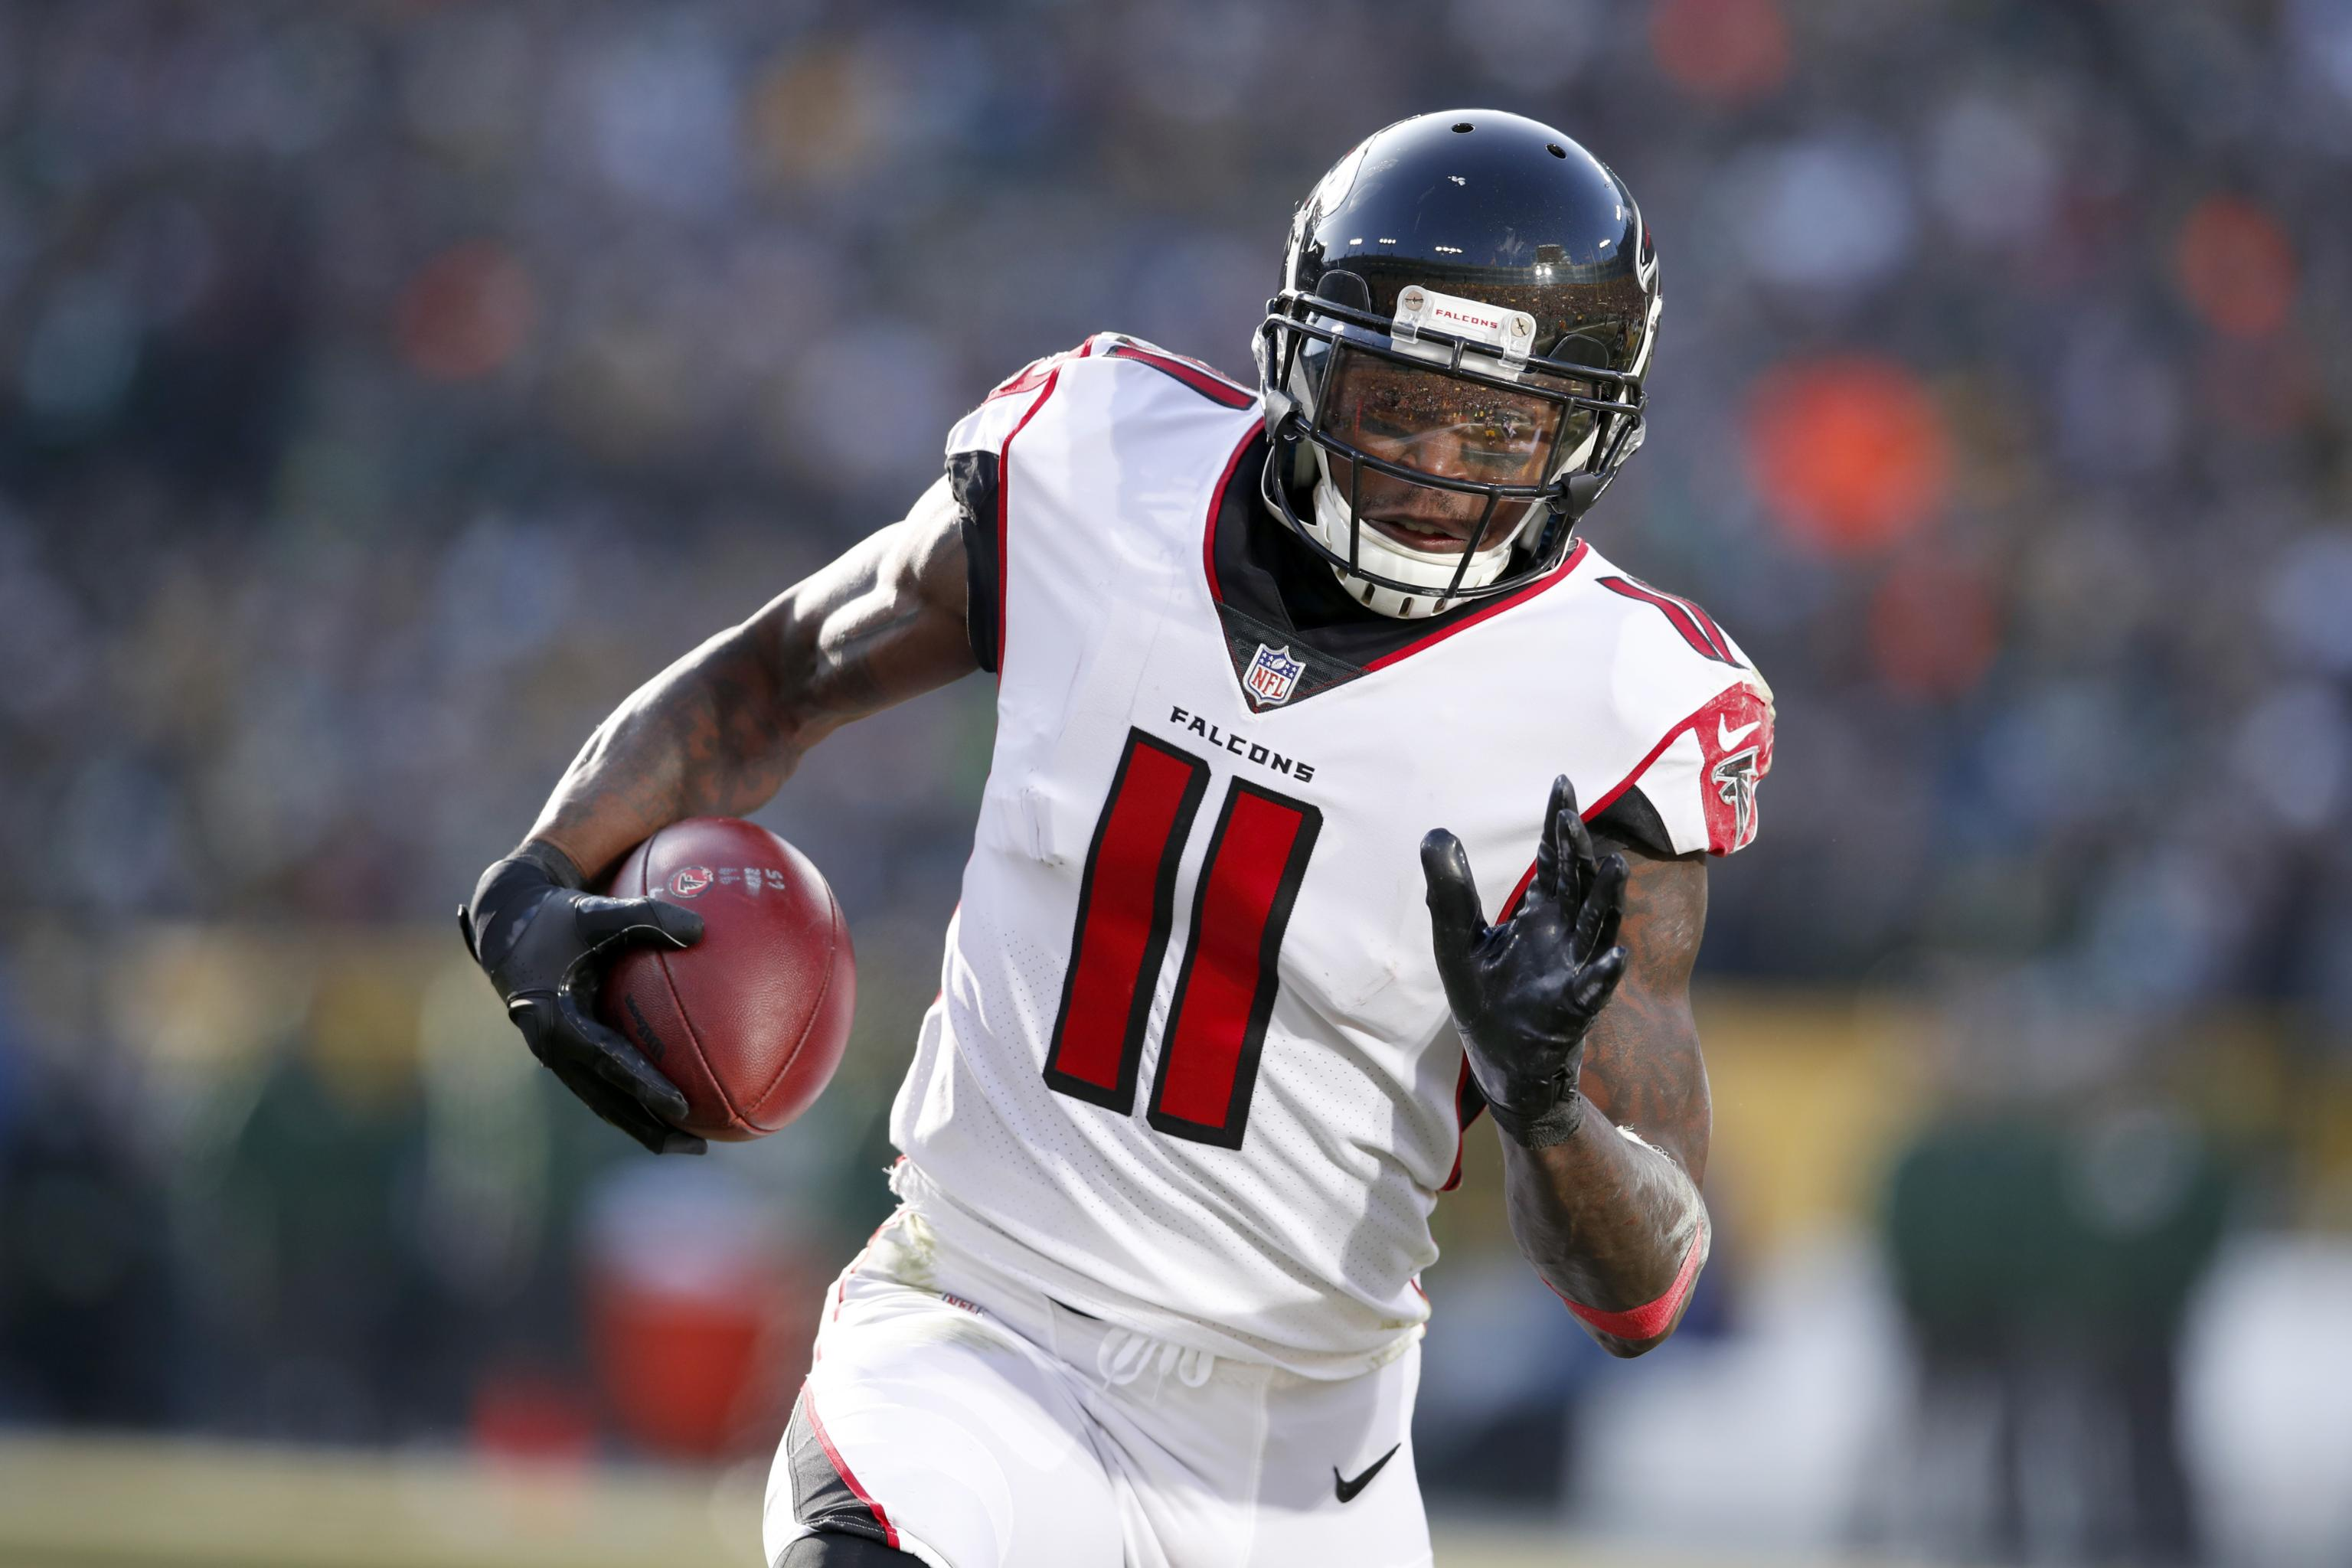 size 40 7fc7b 60410 NFL Rumors: Falcons Eyeing Contracts for Julio Jones, Grady ...